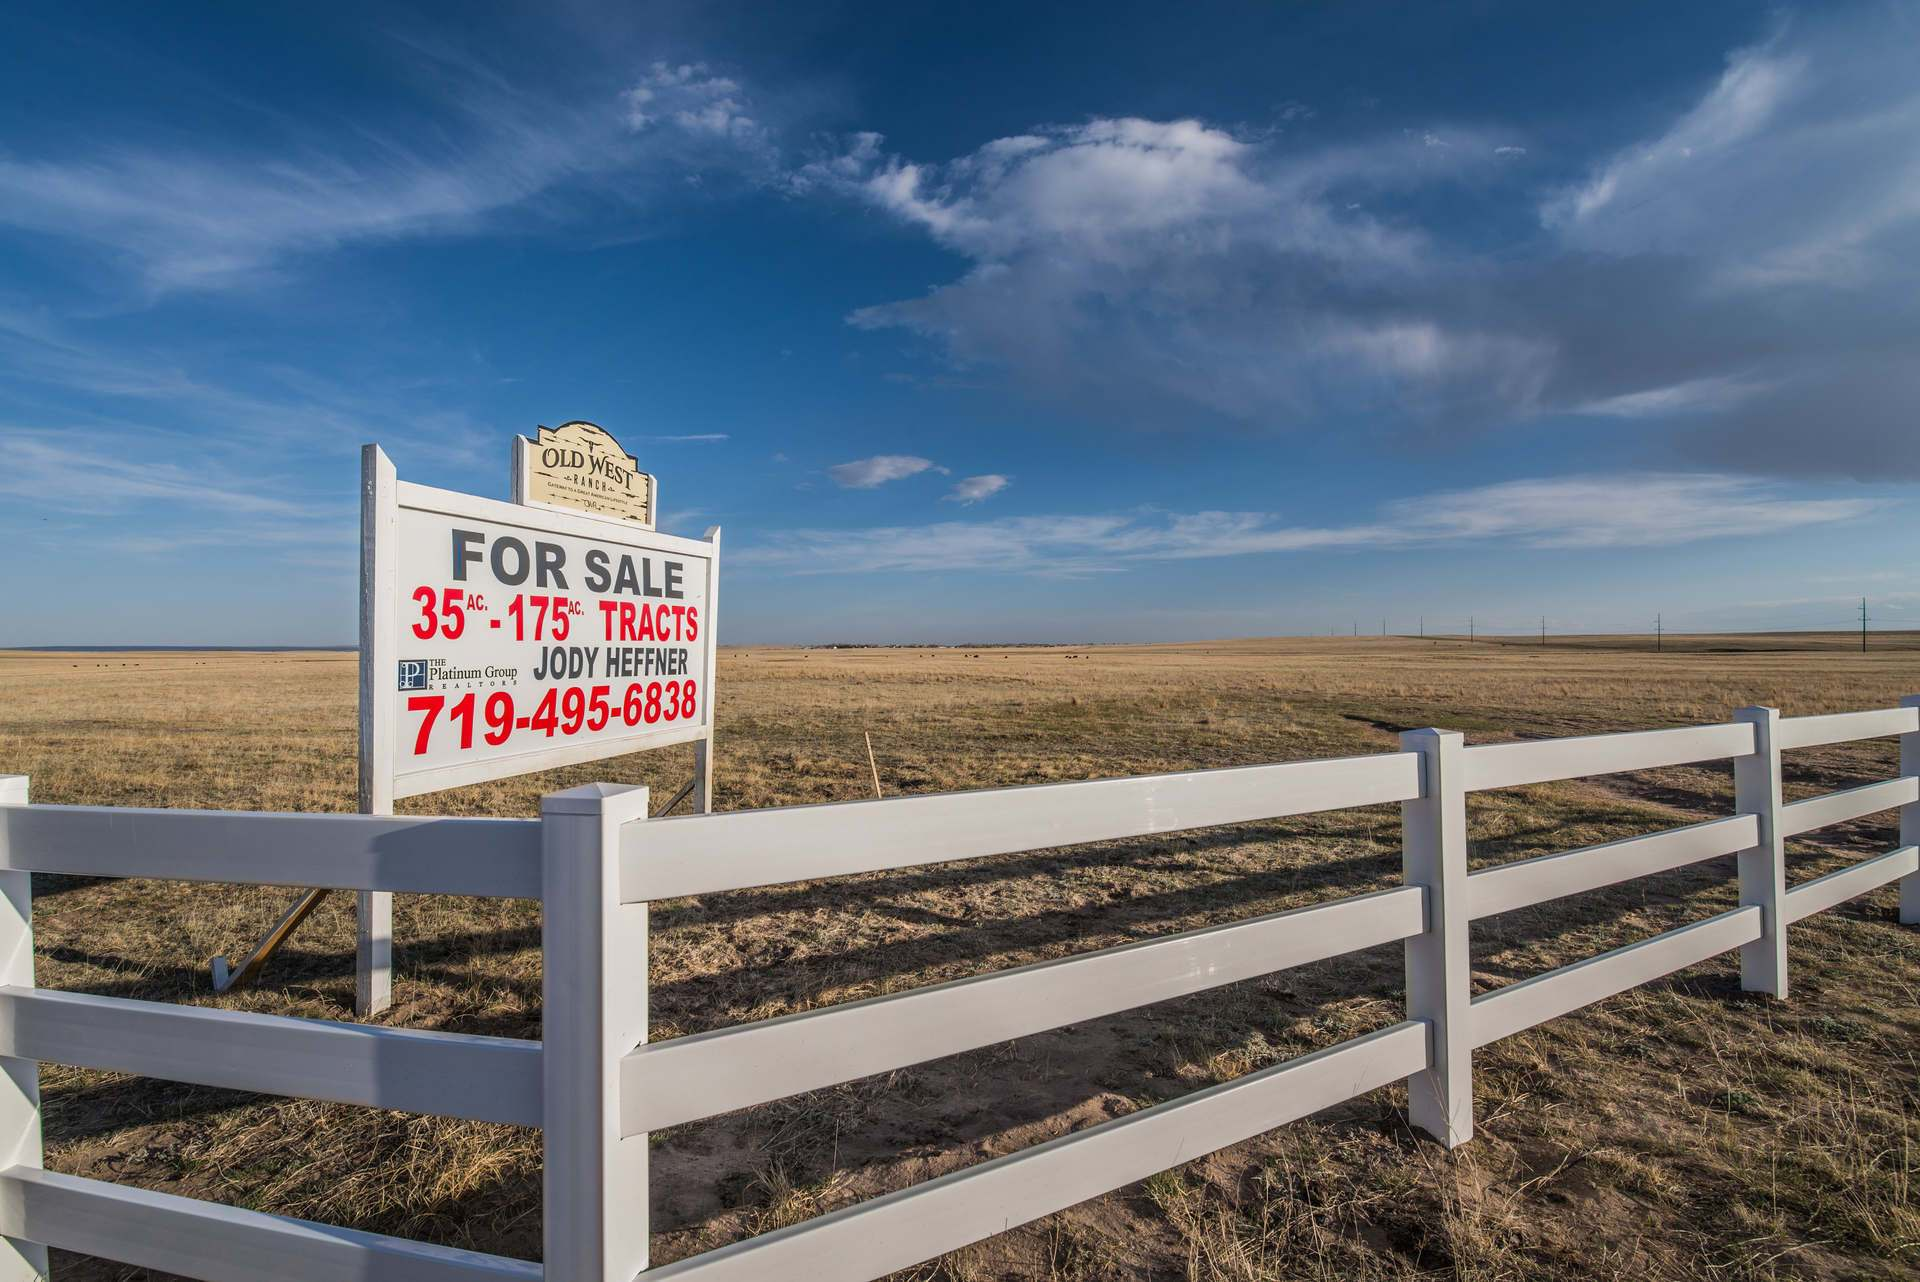 Old West Ranch - Real Estate with Jody Heffner